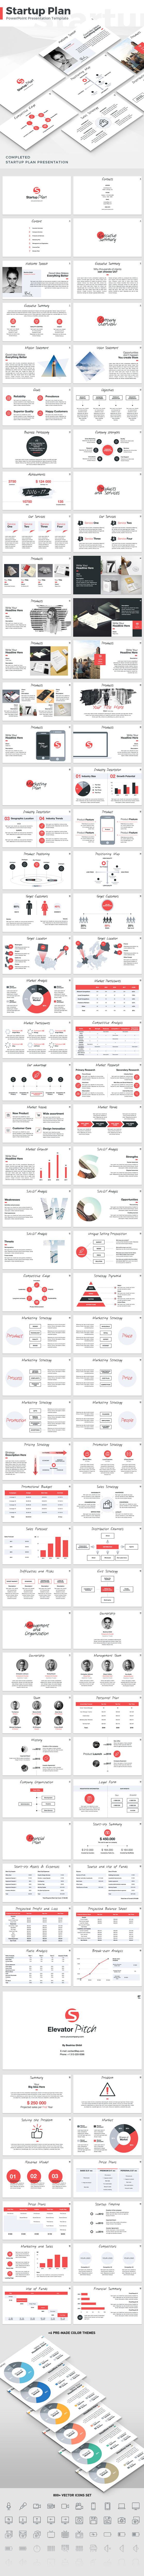 Startup Plan - PowerPoint Template - PowerPoint Templates Presentation Templates